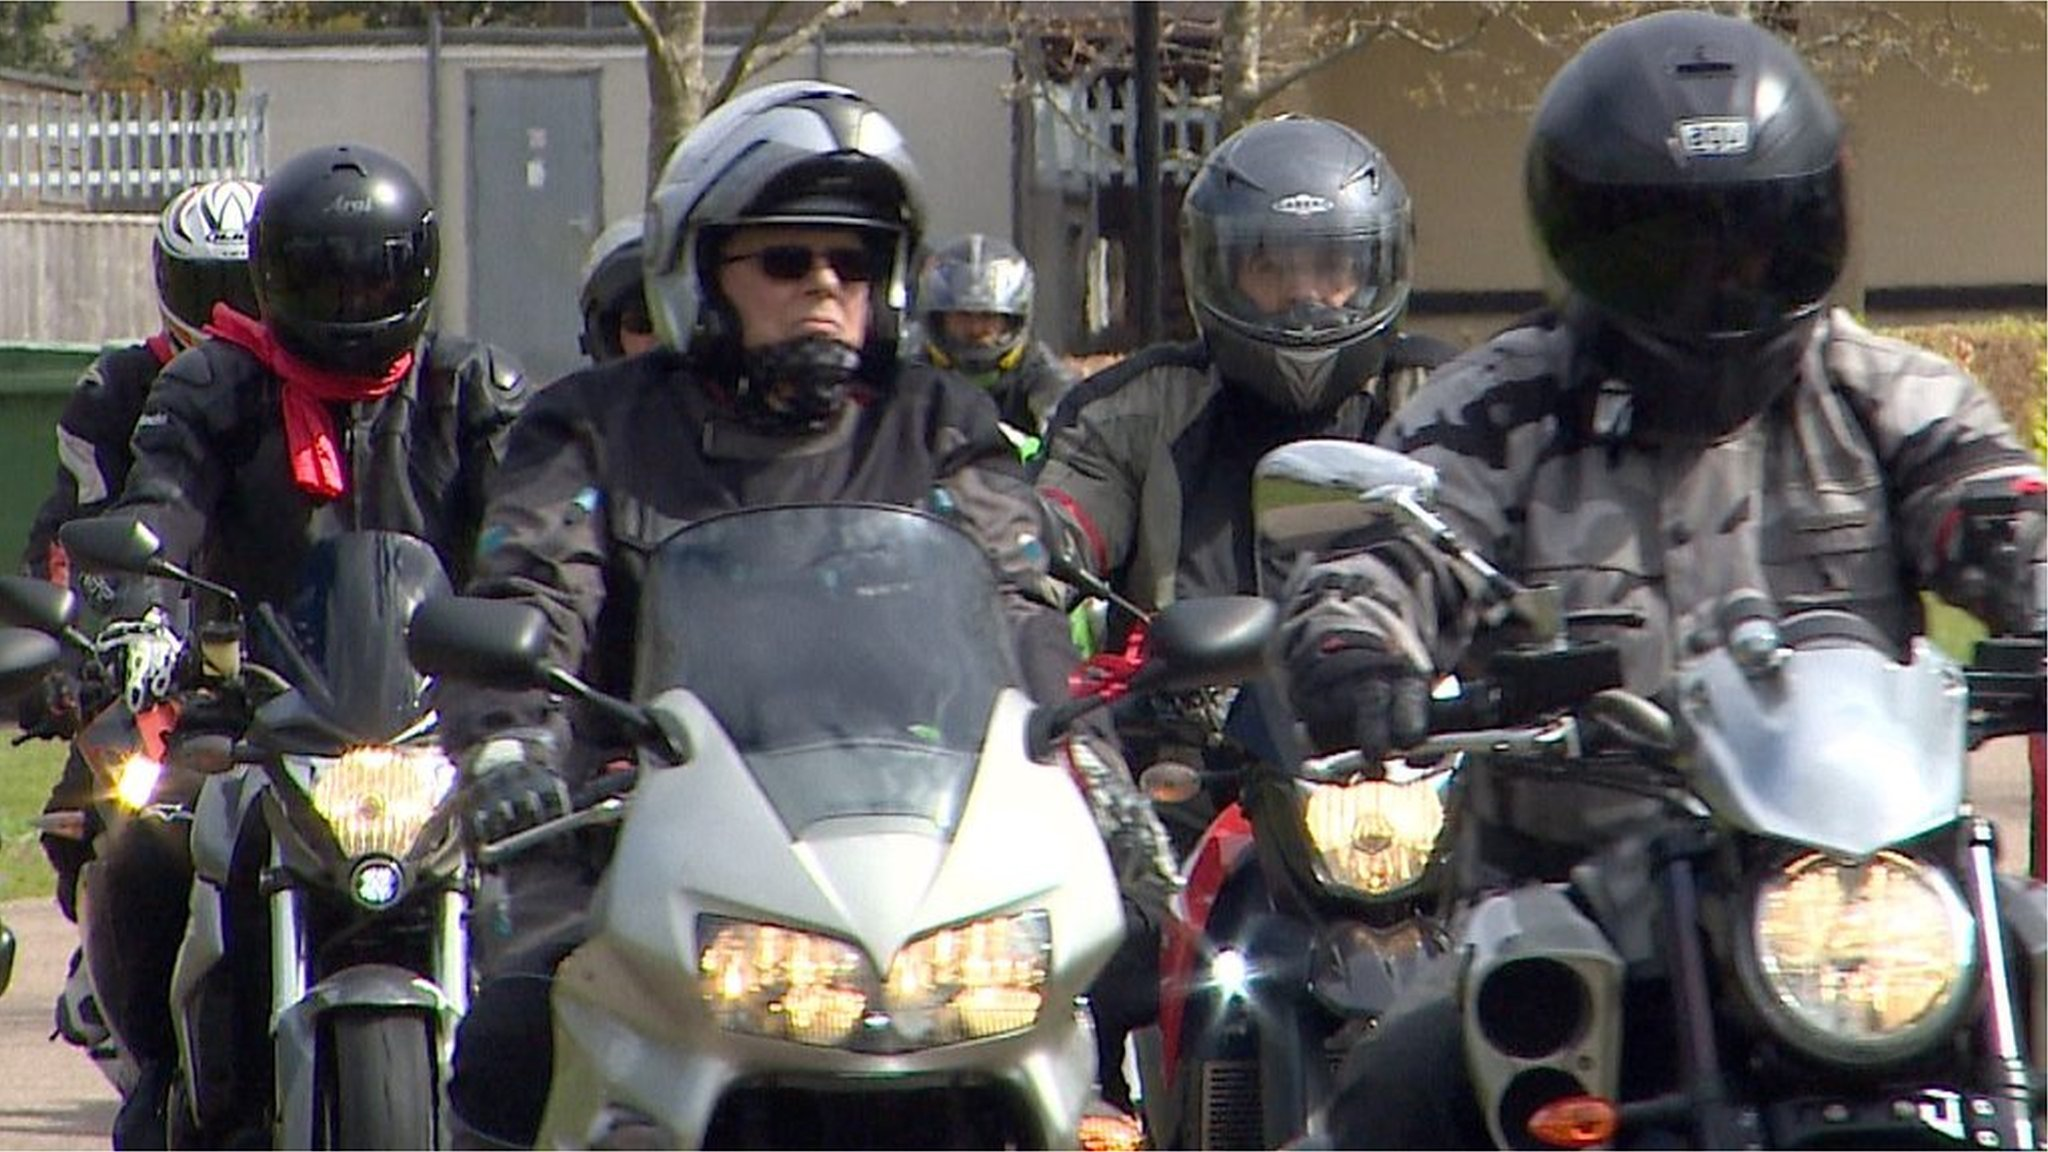 Bikers join Gorleston funeral cortege for 'biker chick'